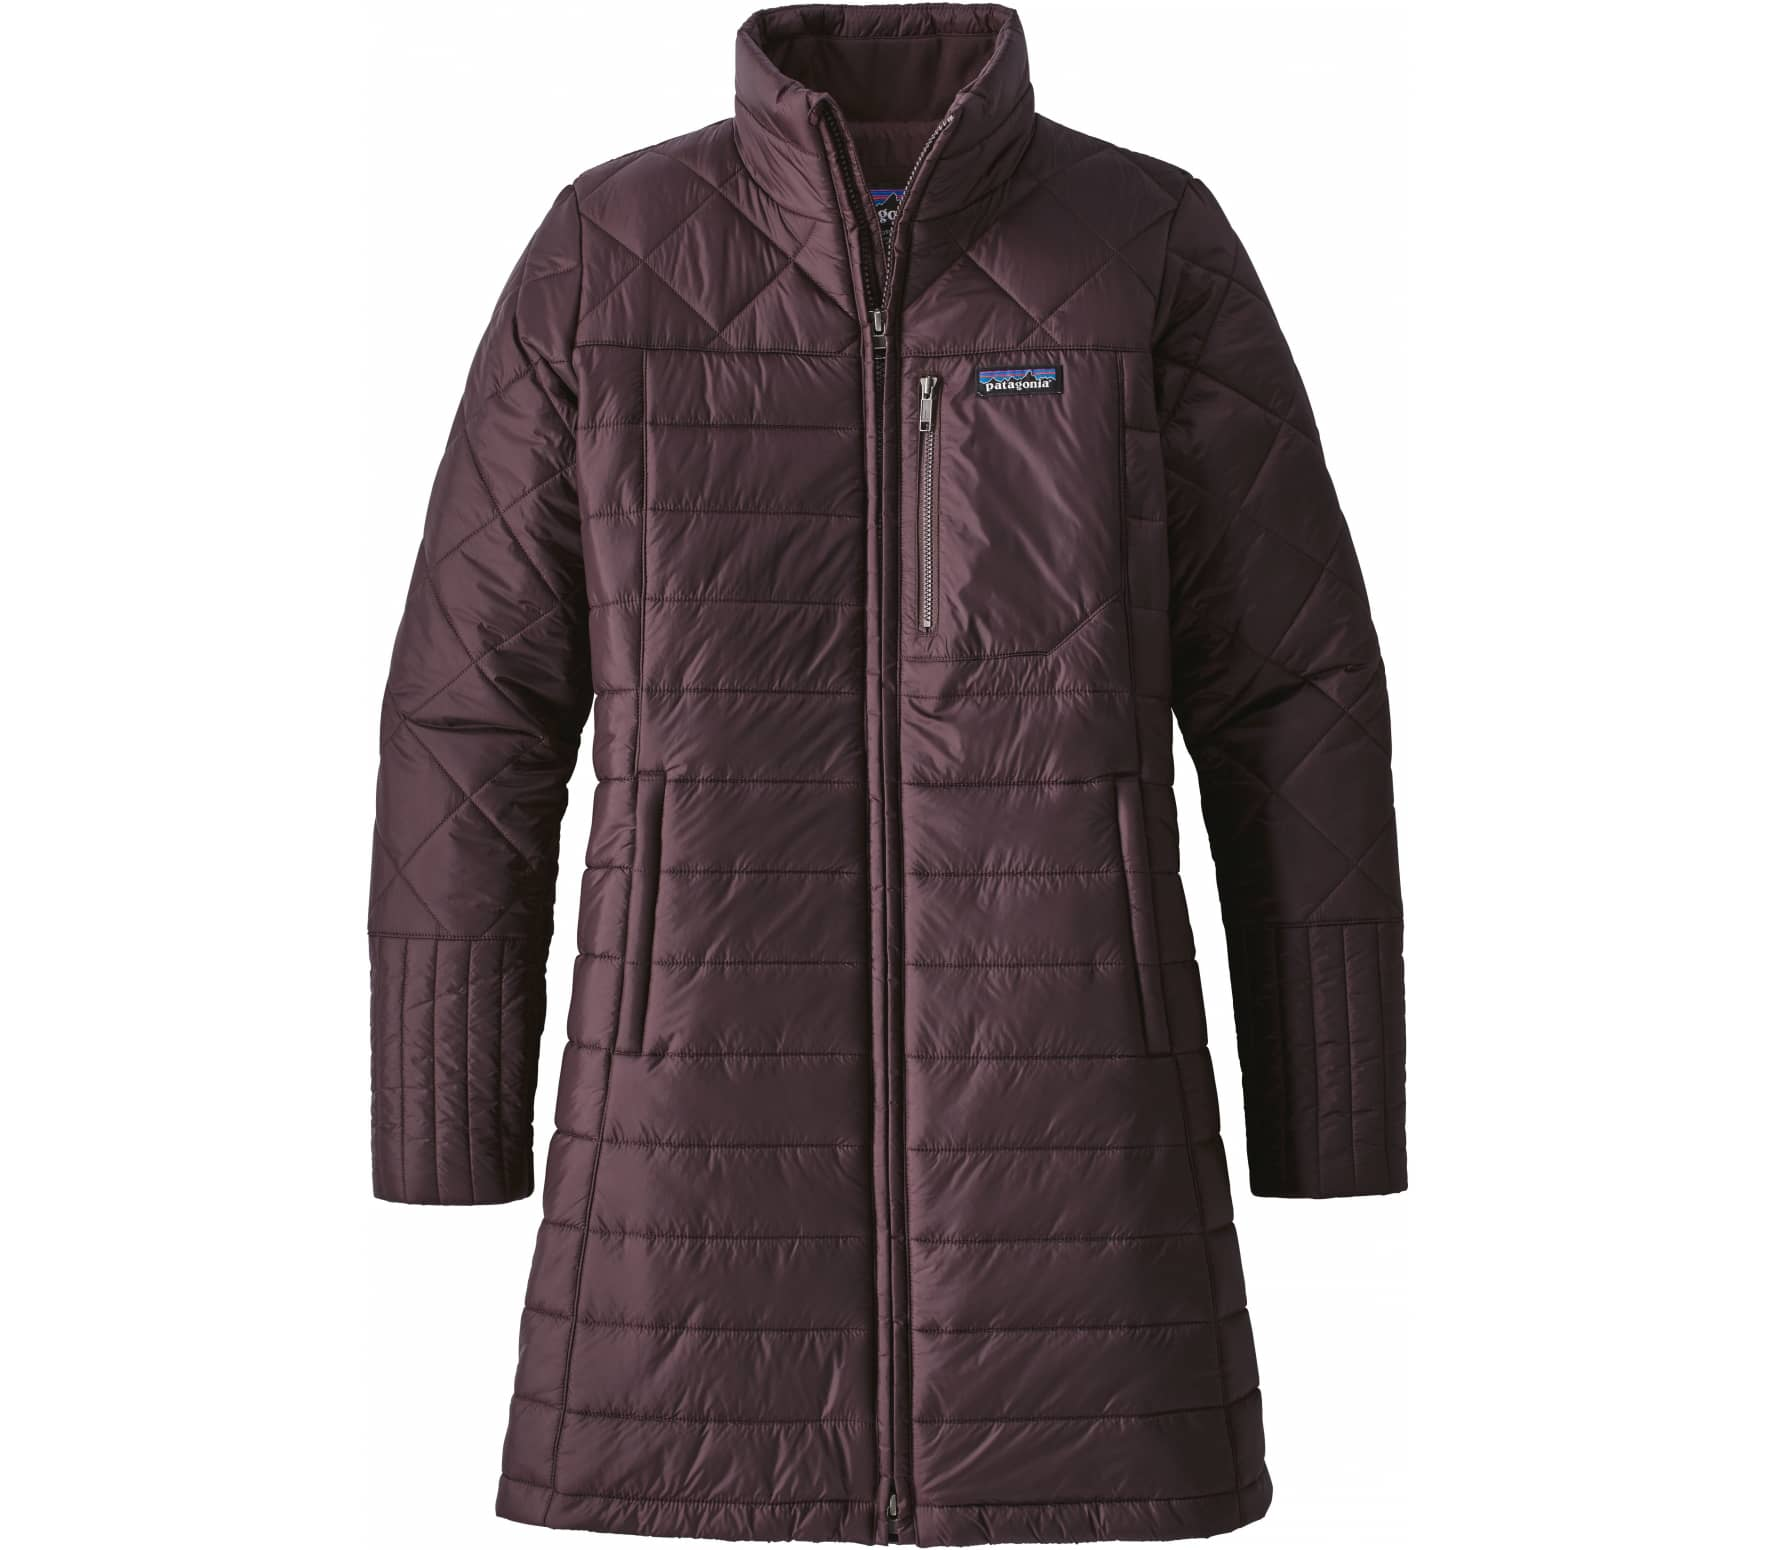 Patagonia - Radalie parka women's parka (brown)